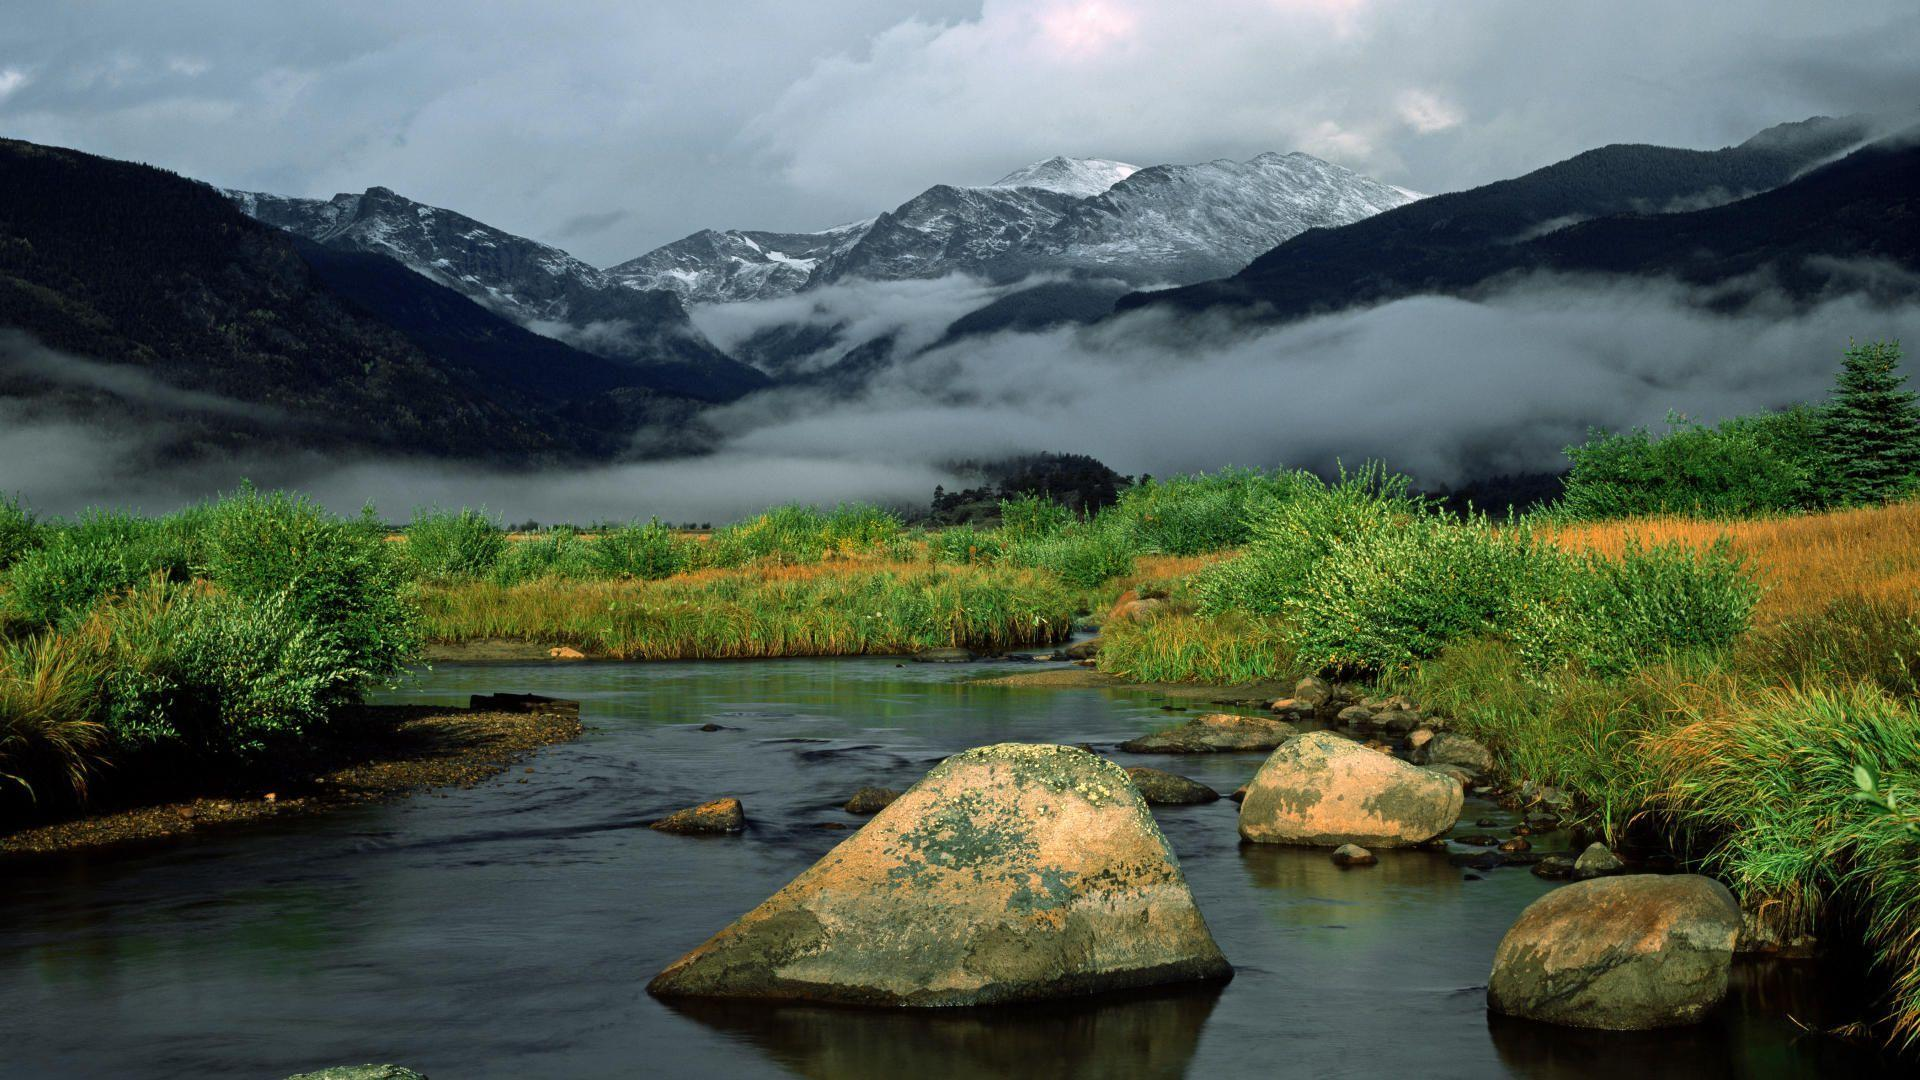 Rocky Mountain National Park Wallpapers - Wallpaper Cave